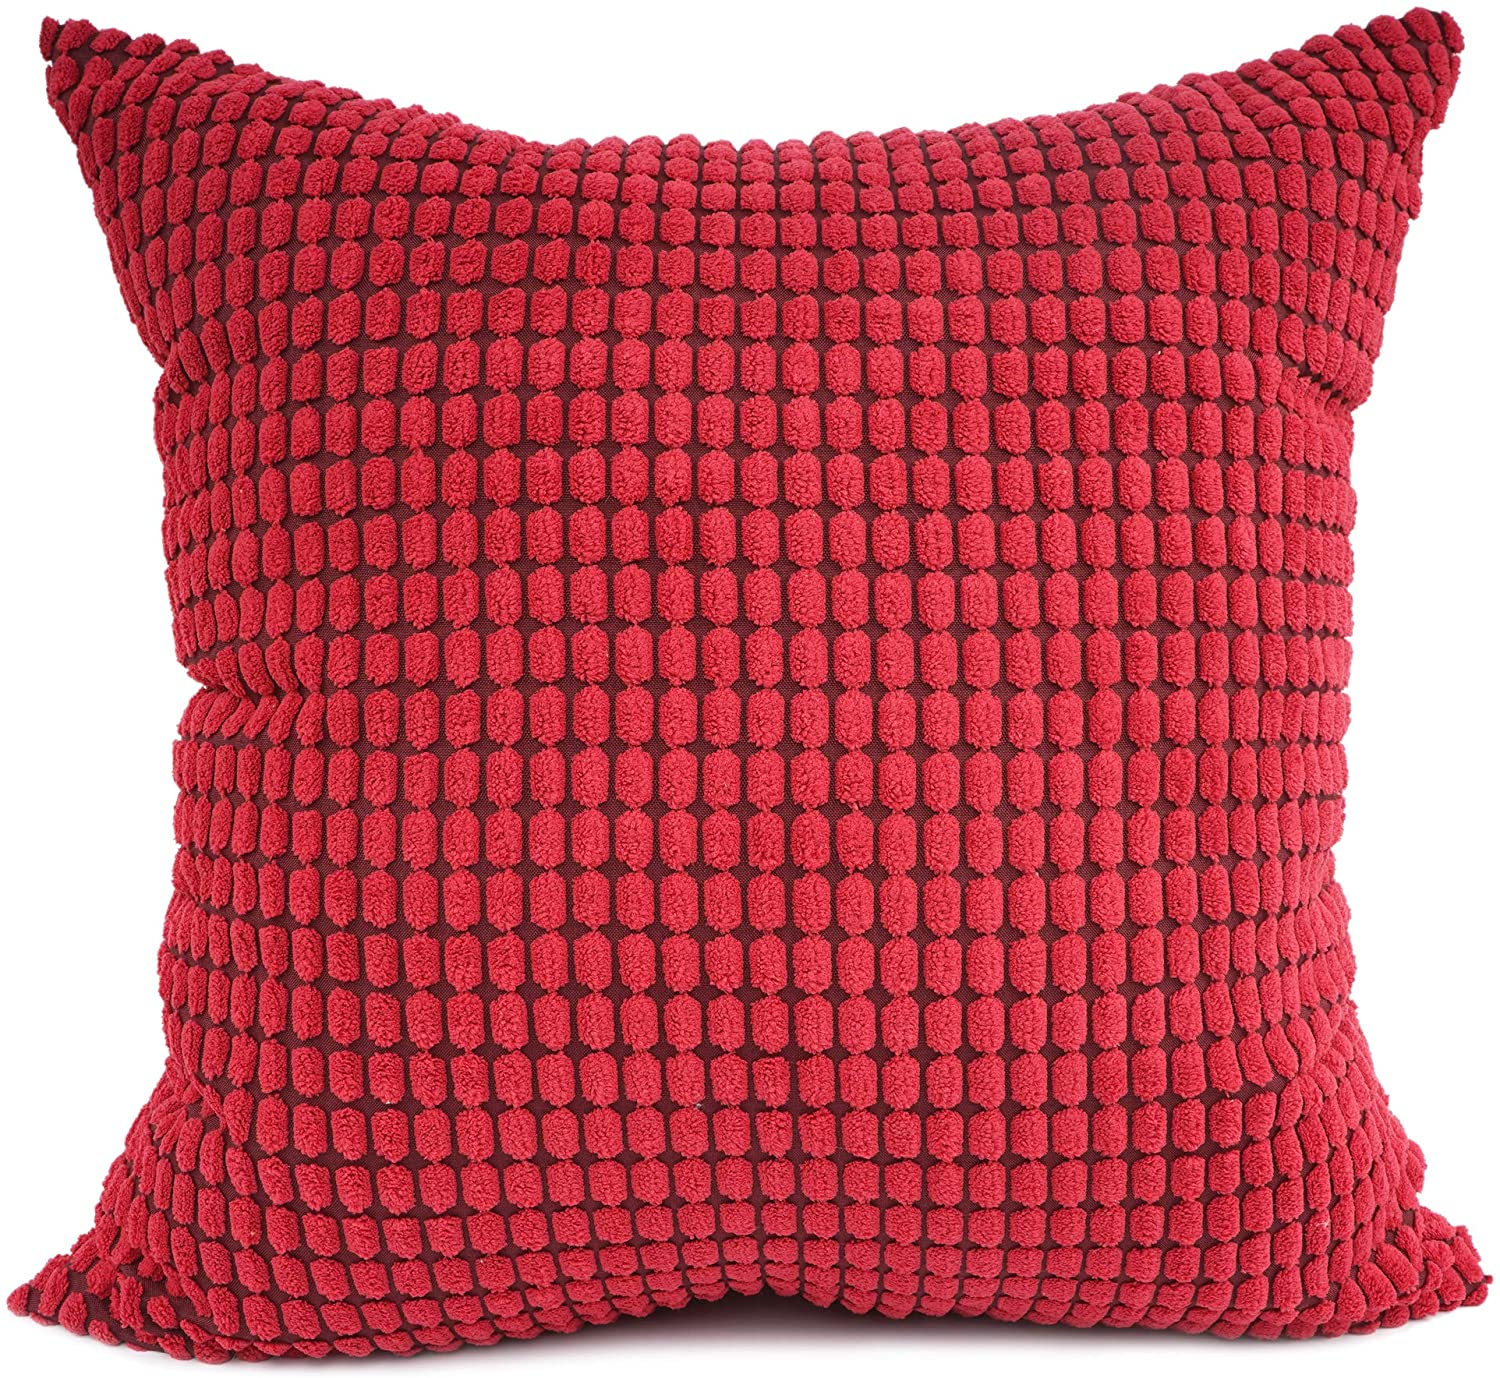 YOUR SMILE Cozy Bolster Pillow Cover Case for Couch Sofa Bed Comfortable Supersoft Corduroy Corn Striped Both Sides 24 X 24 Inches,Red